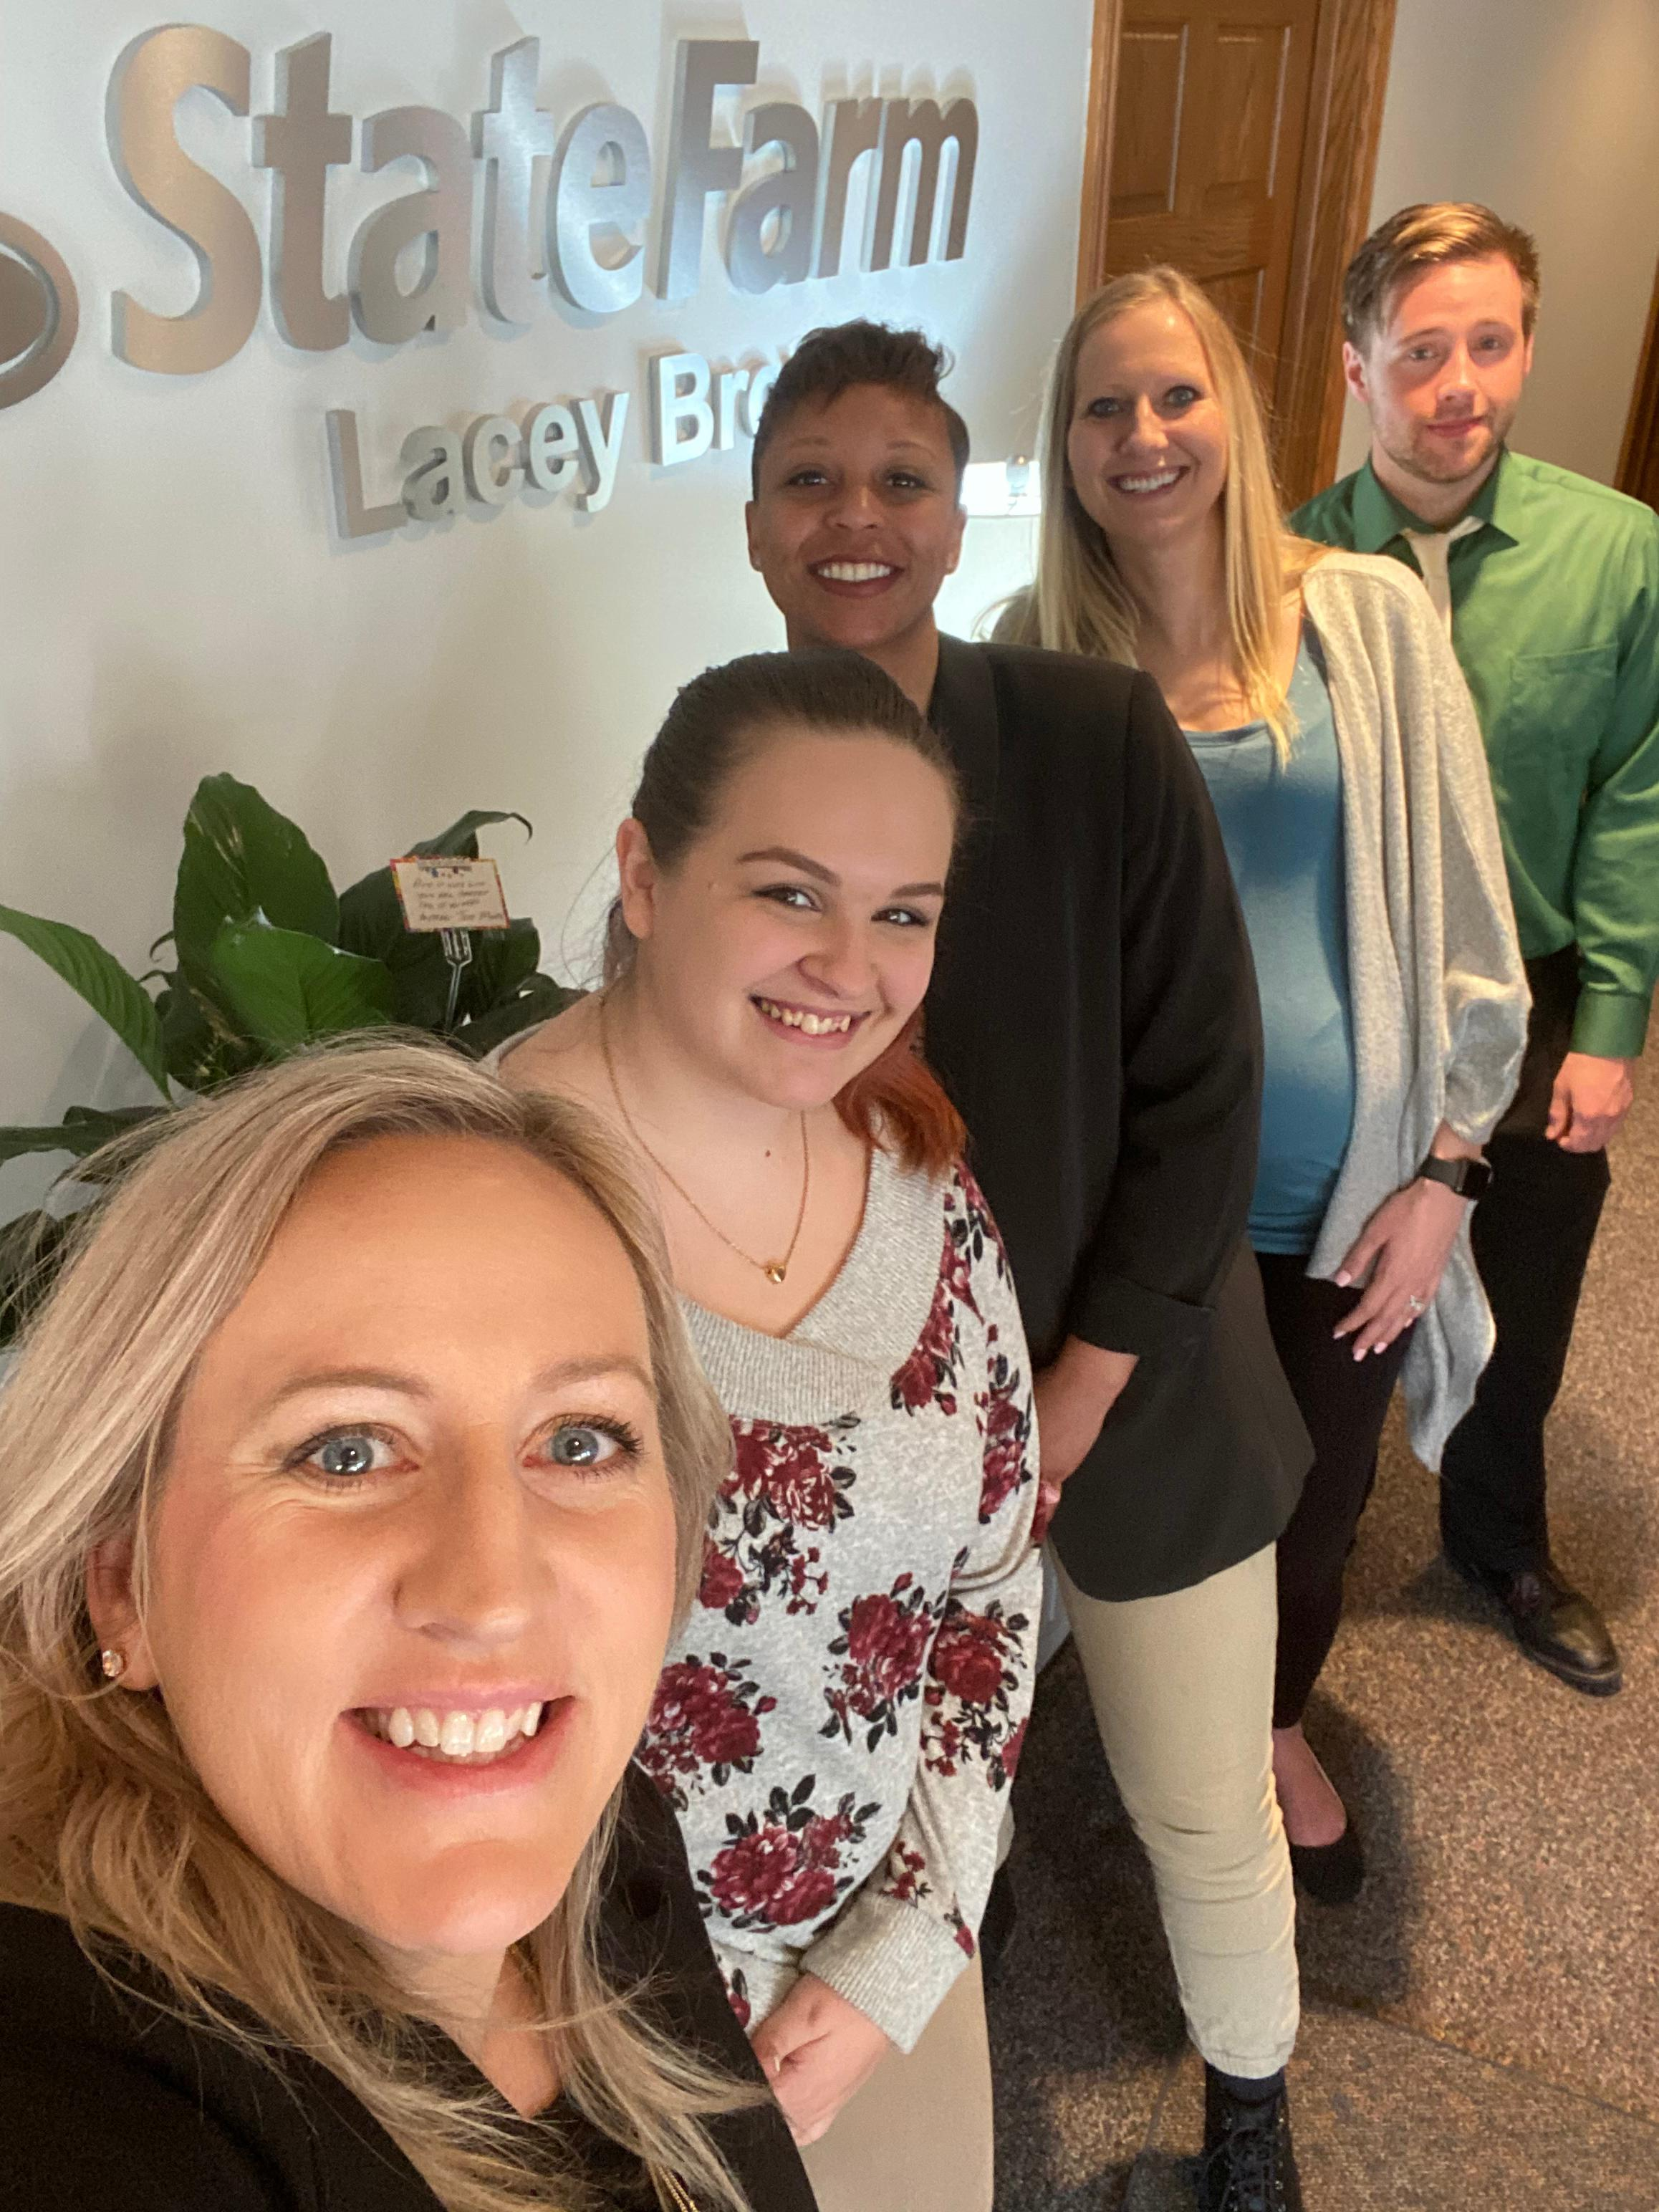 The Lacey Brown Team enjoying each other's company! Lacey Brown - State Farm Insurance Agent Ralston (402)779-8338